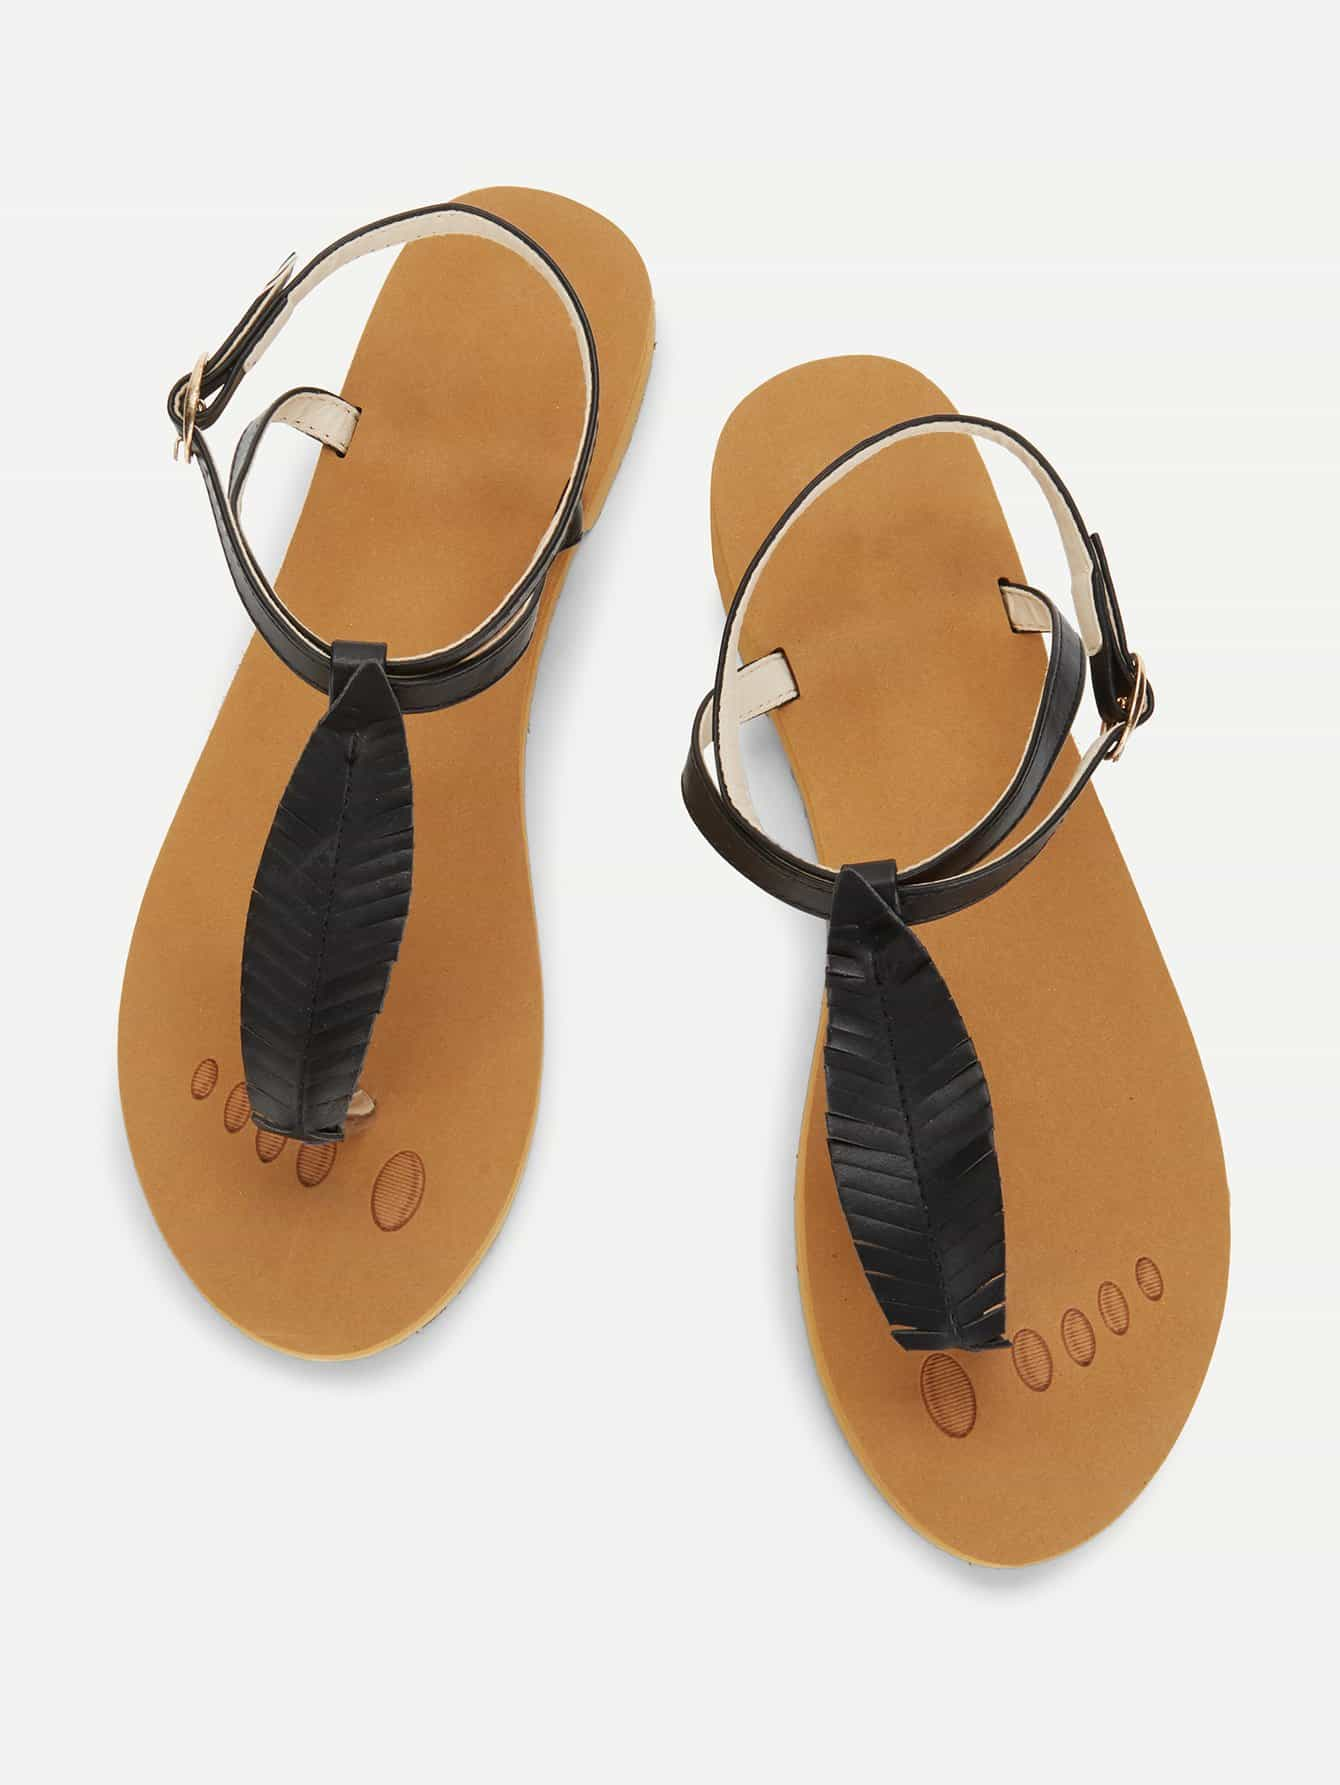 Toe Post Strappy Flat Sandals rose decorated toe post flat sandals